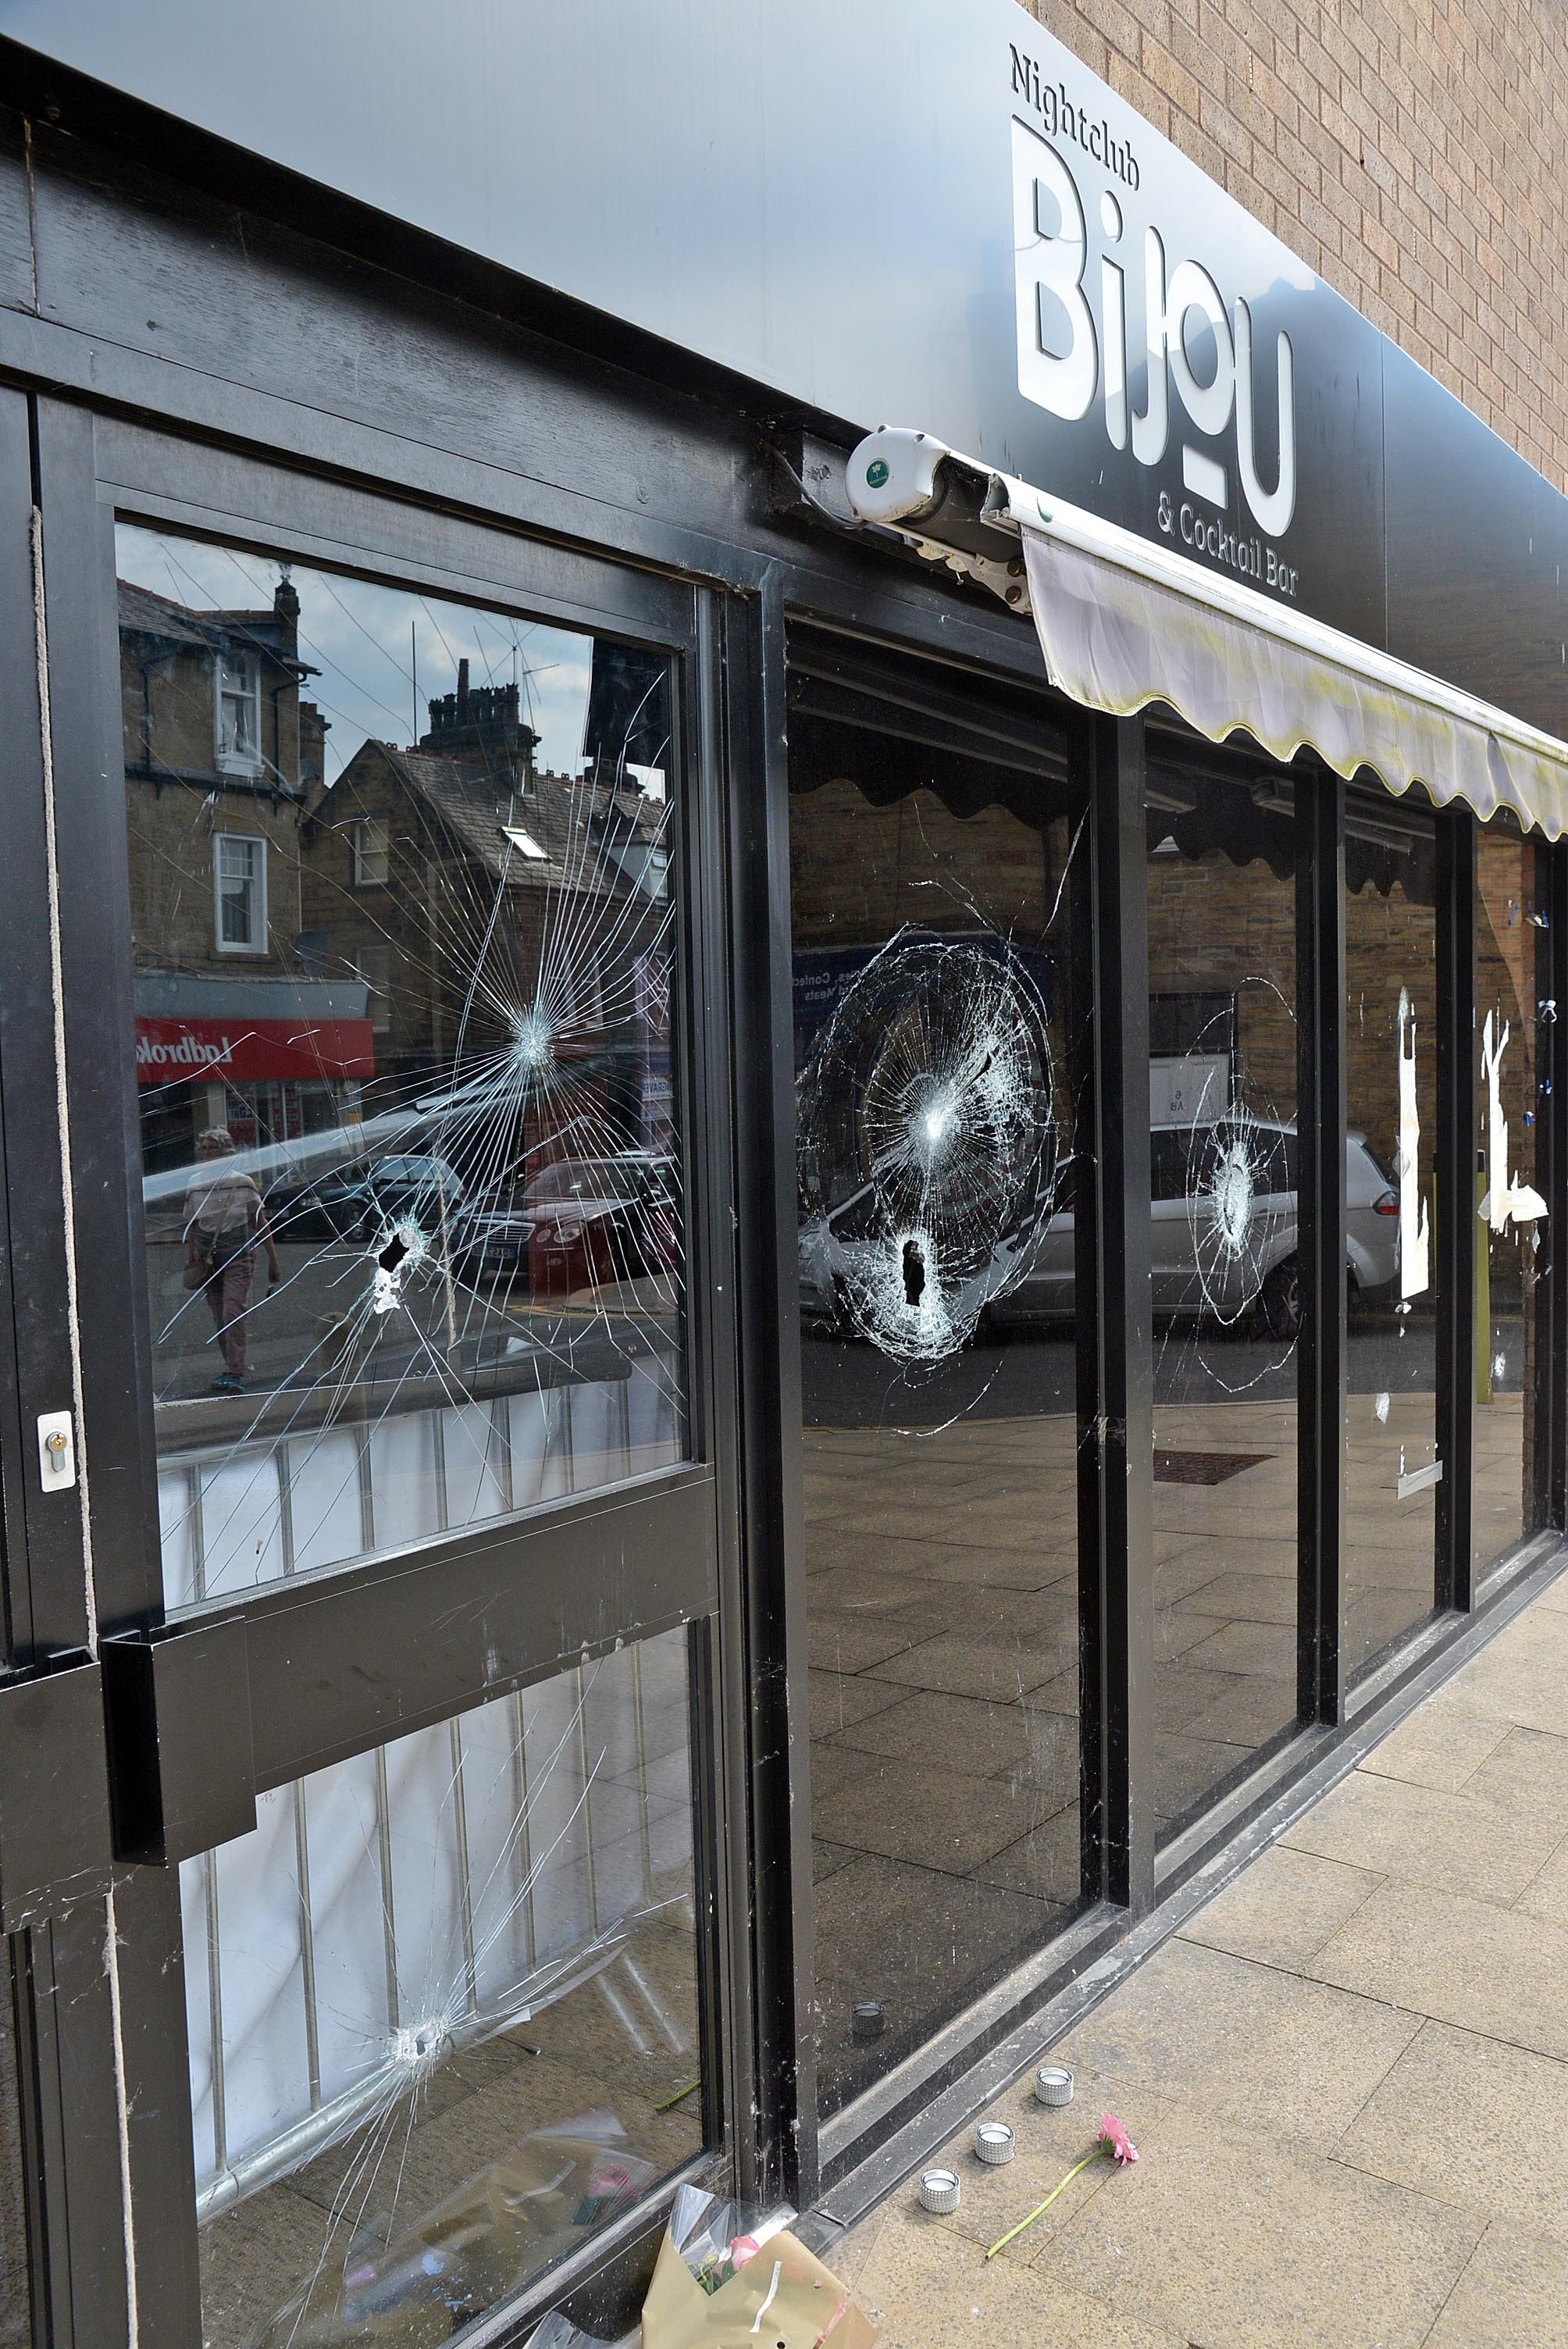 Former Bijou nightclub, Bingley, after the windows were smashed